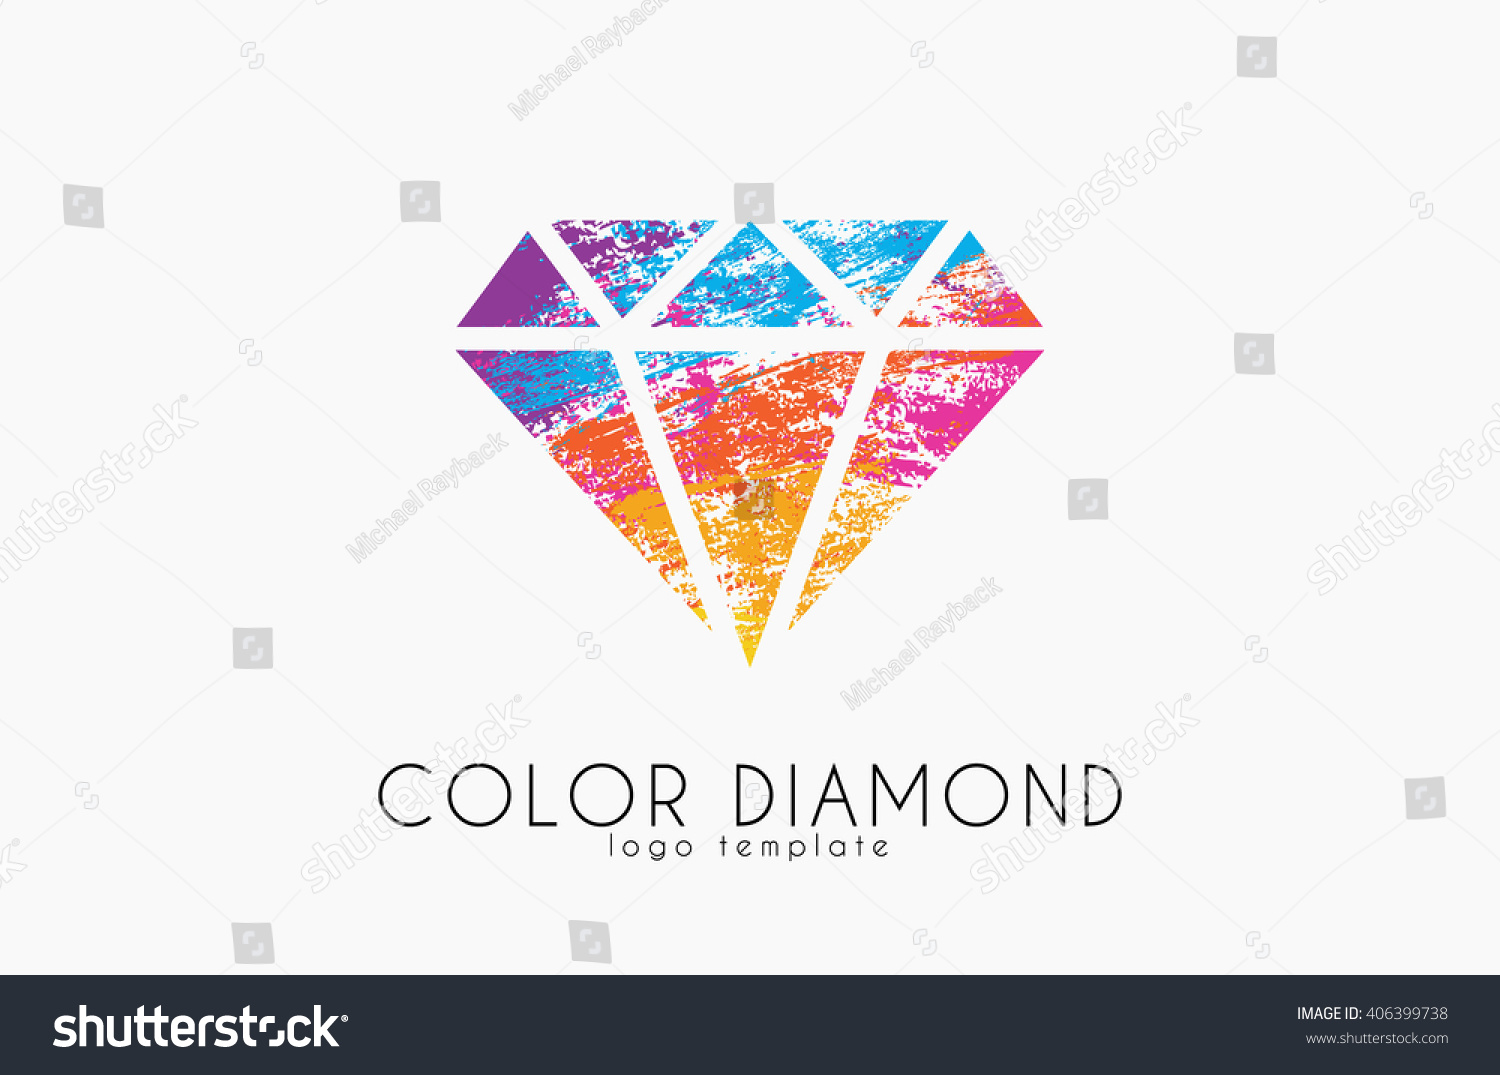 logo illustration of diamond activity image stock